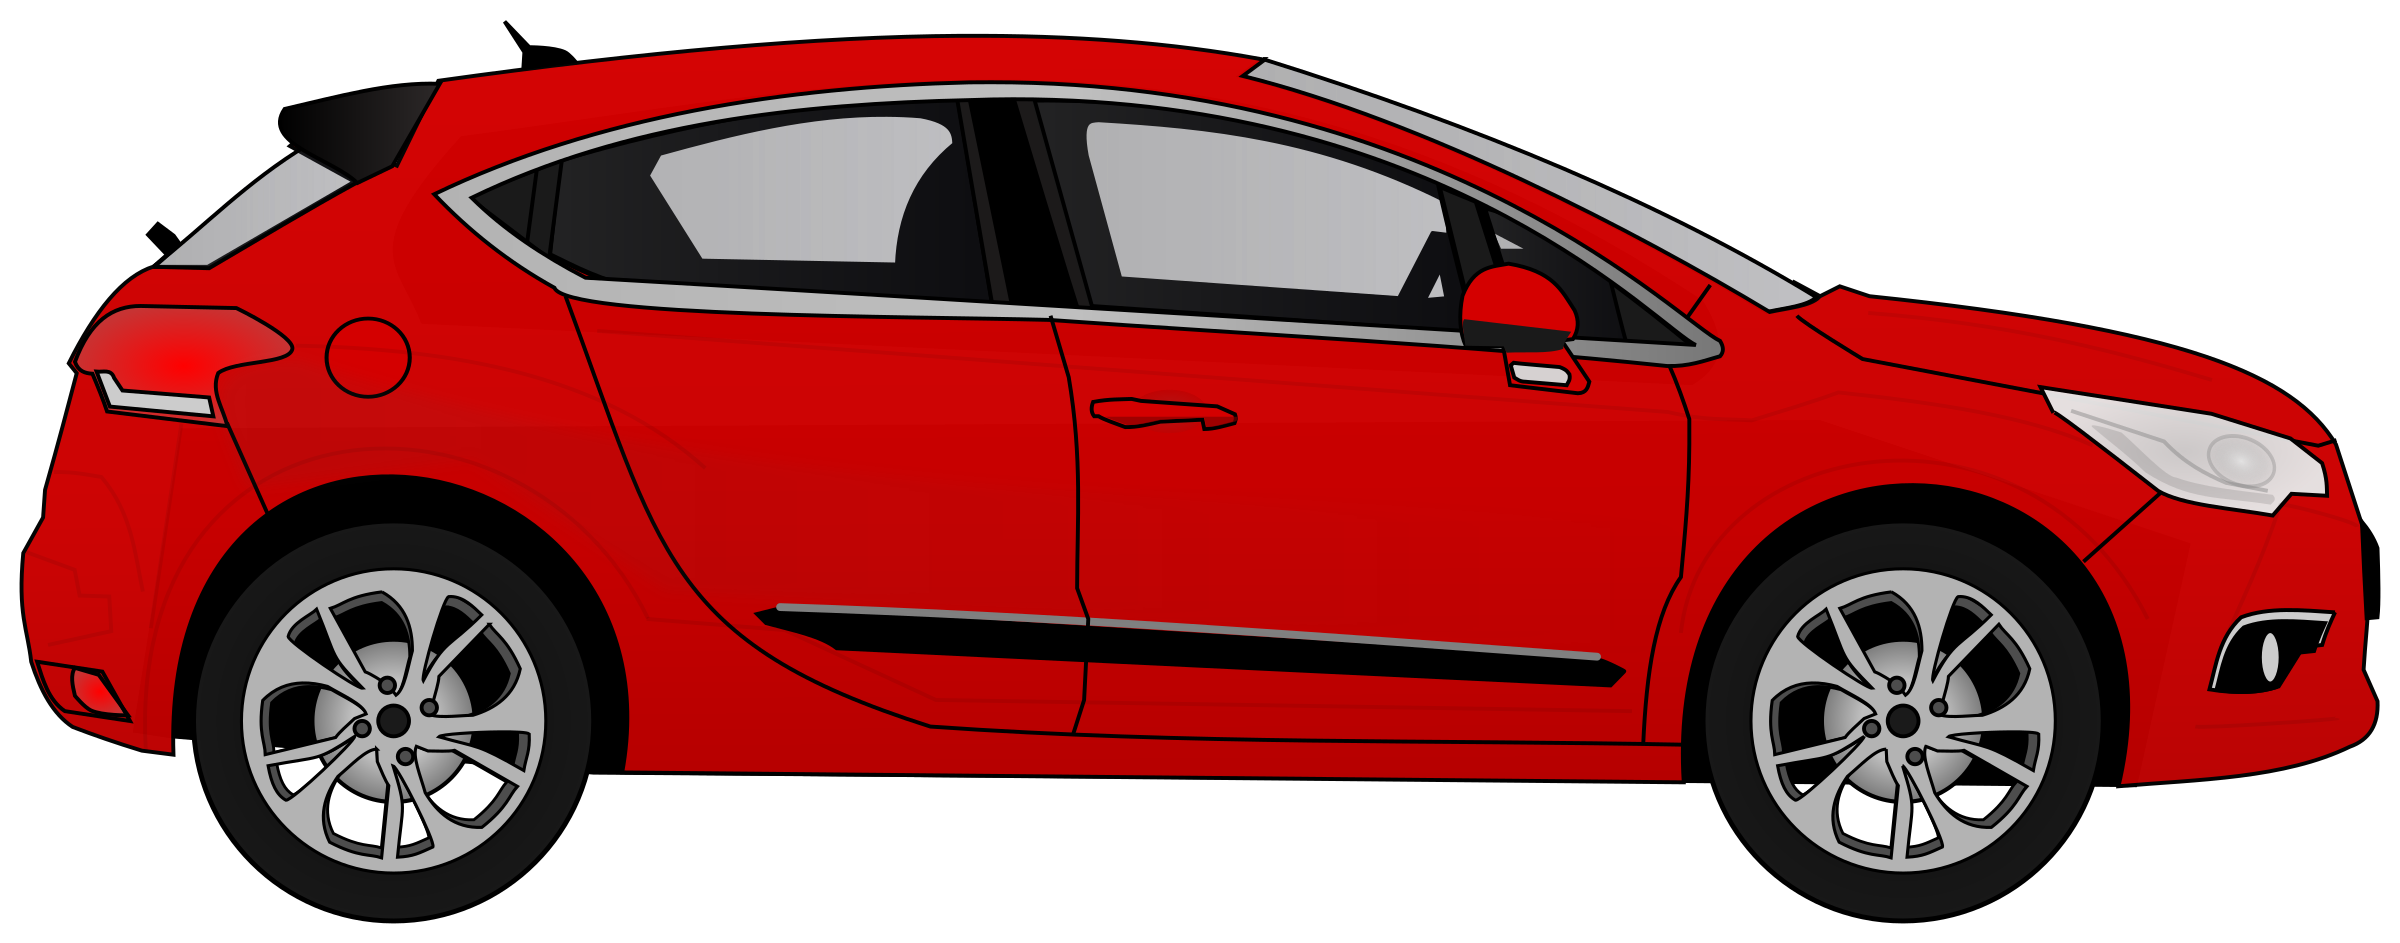 Car Clip Art, Vector Images & Illustrations - iStock